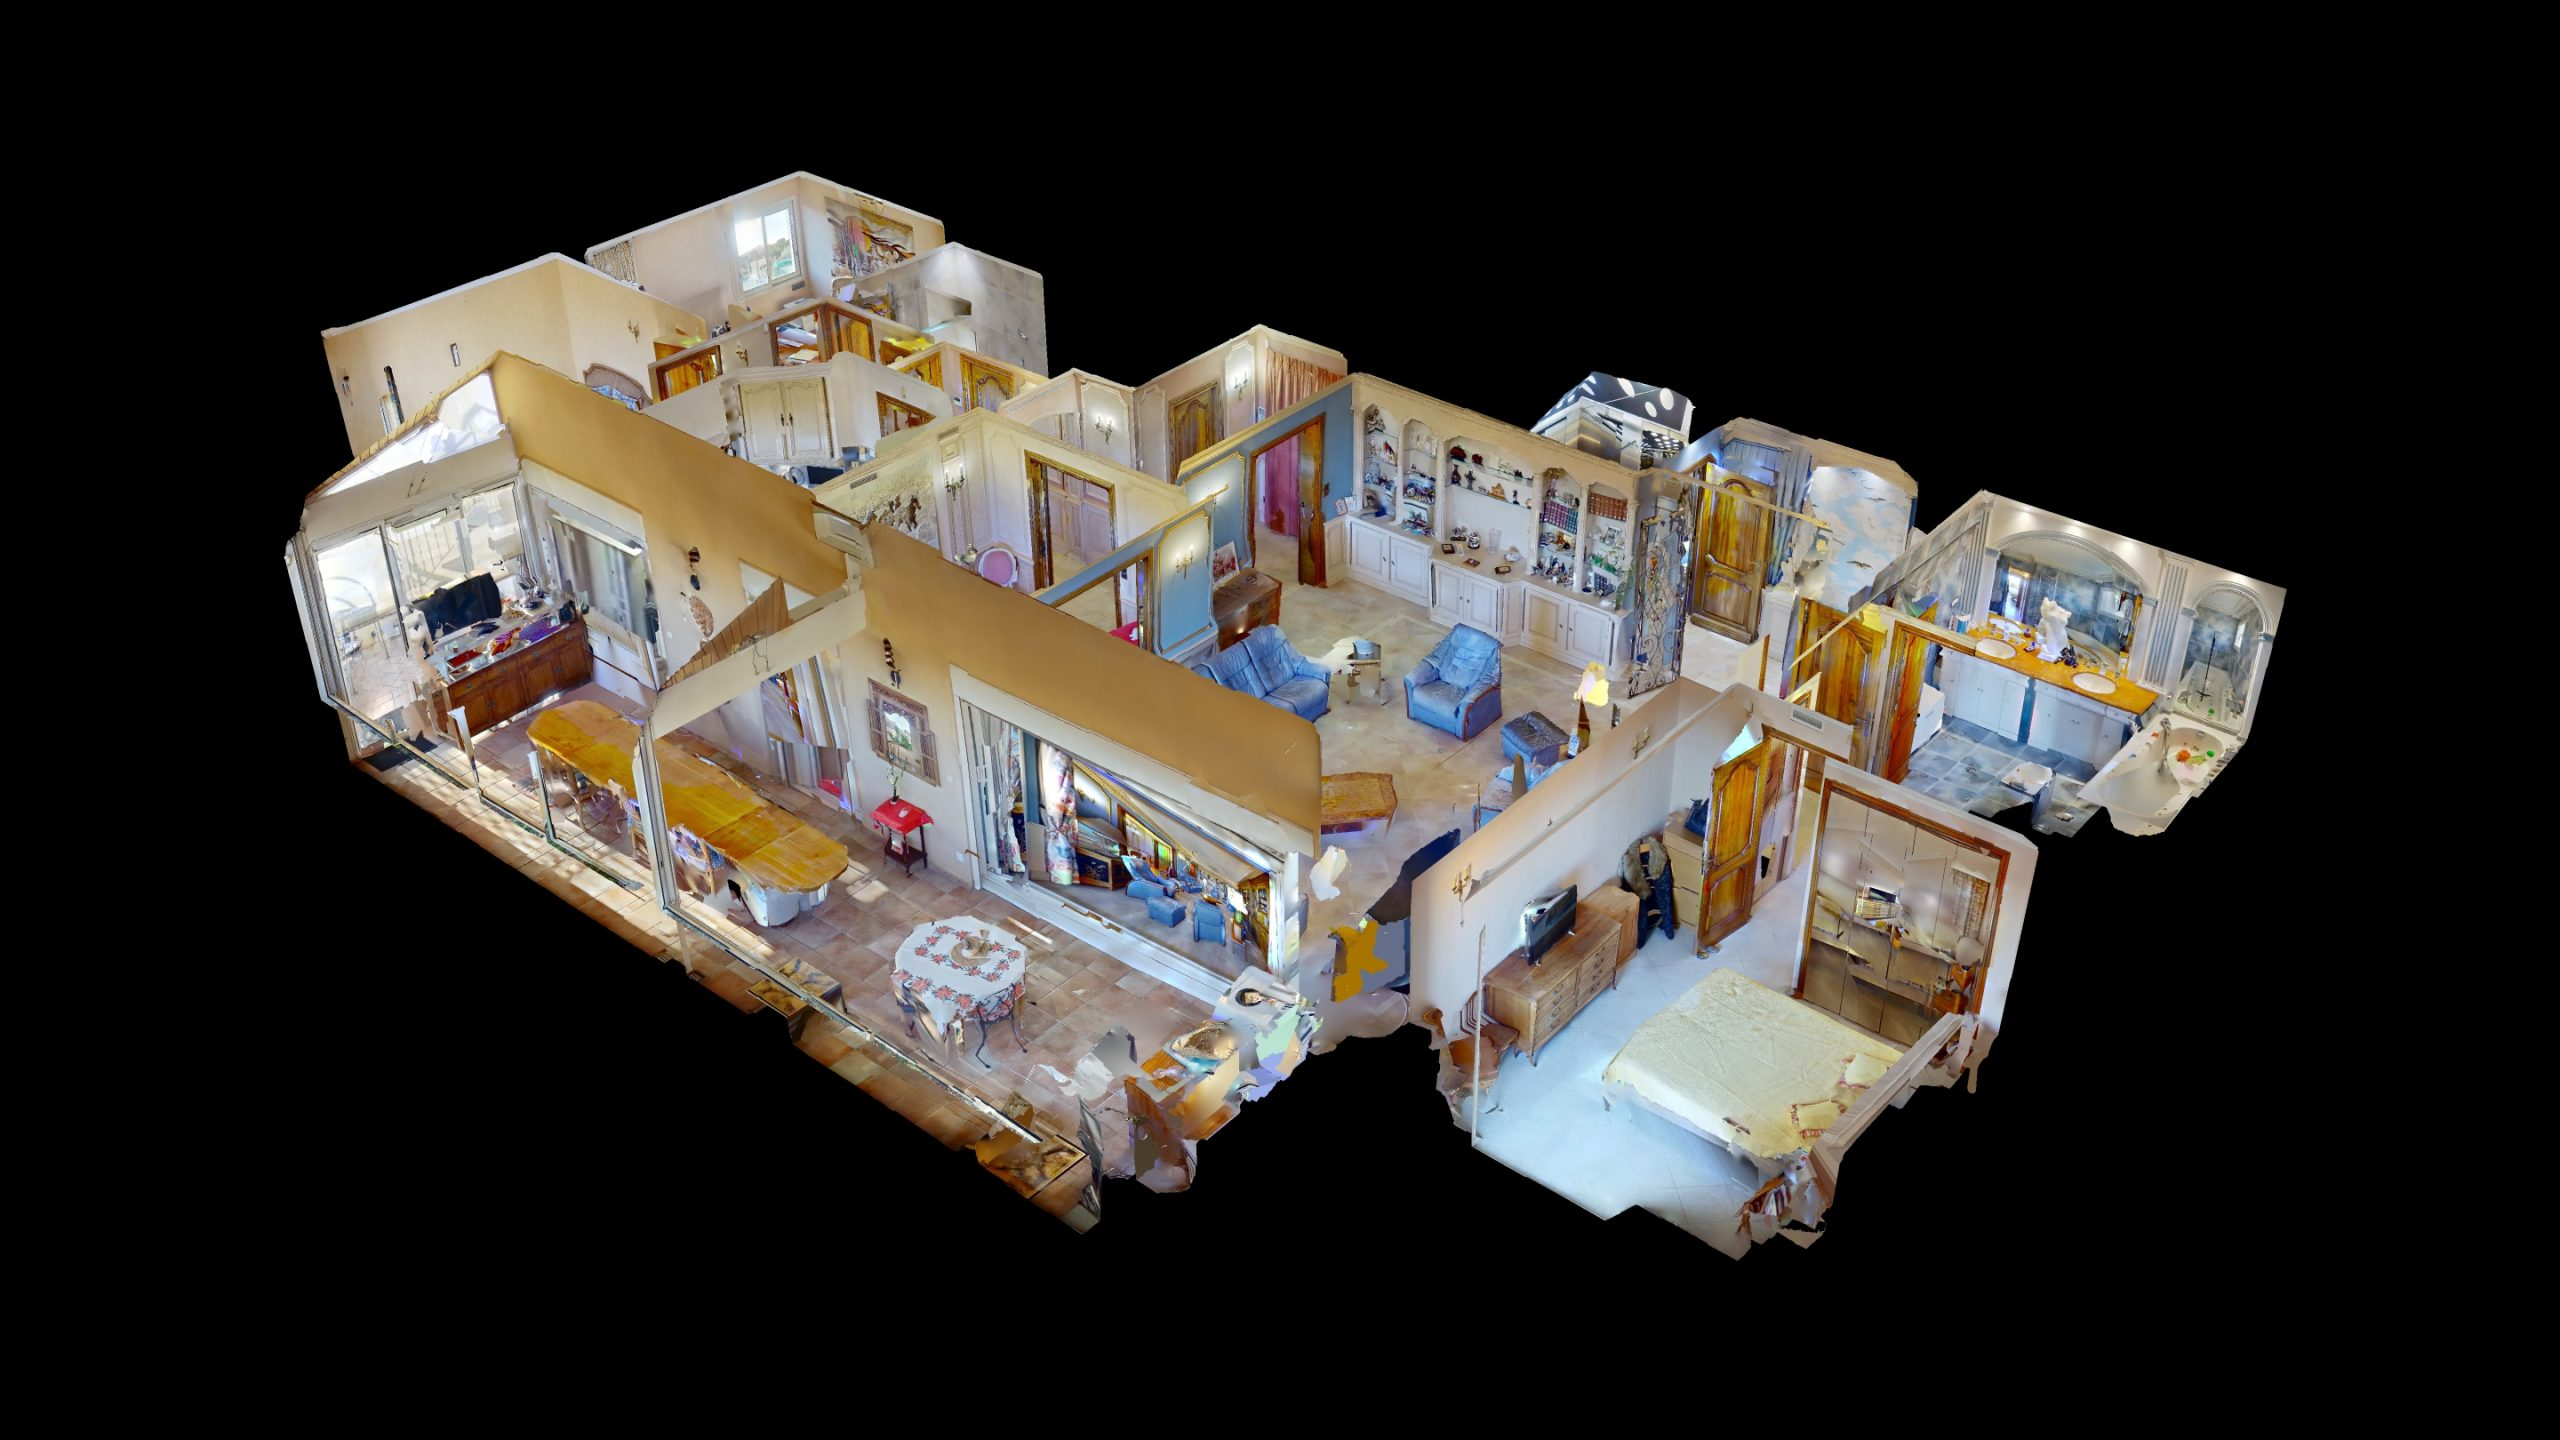 CARQUEIRANNE Dollhouse View scaled Provencal appartment with sea views